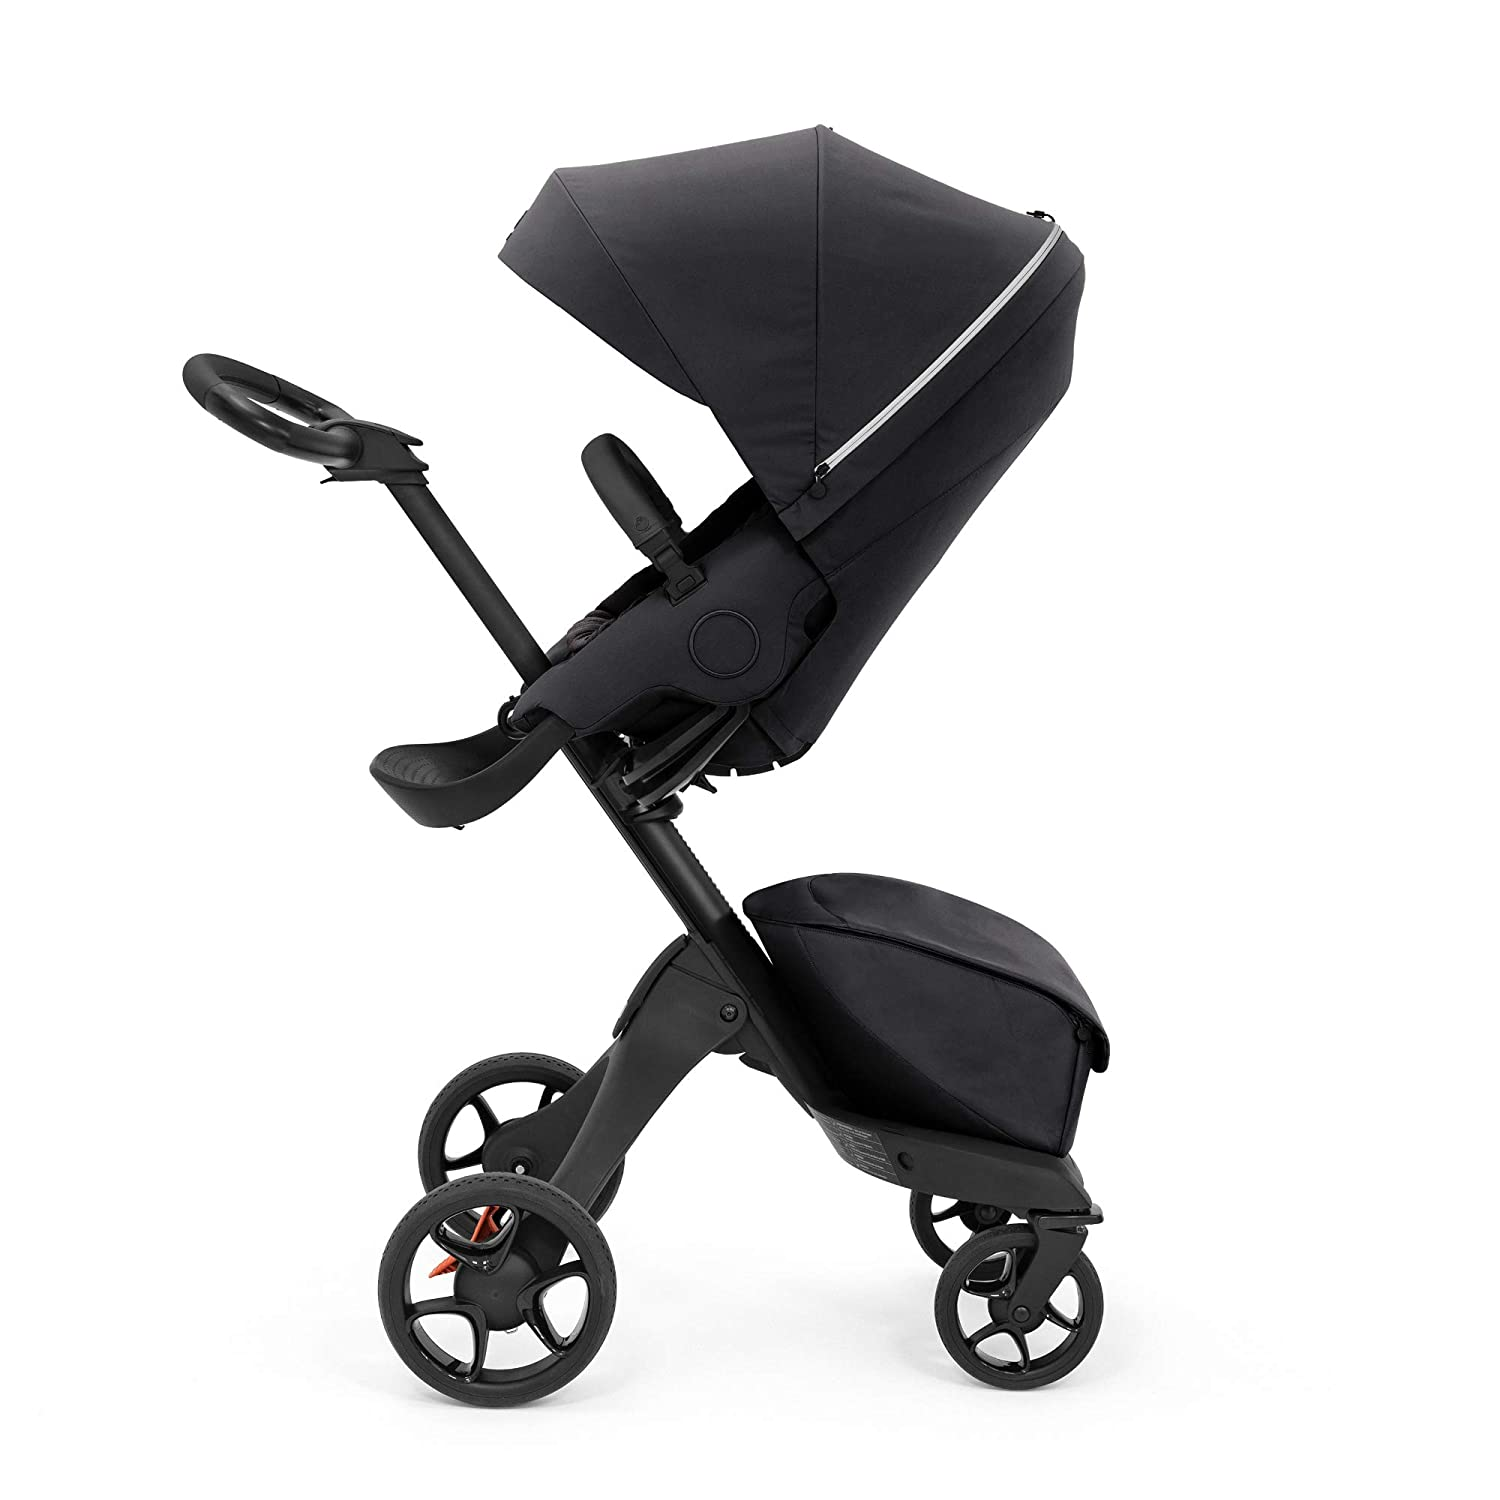 Stokke Xplory X, Rich Black - Luxury Stroller - Adjustable for Both Baby & Parents' Comfort - Padding, Harness & Reflective Zipper for Added Safety - Folds in One Step